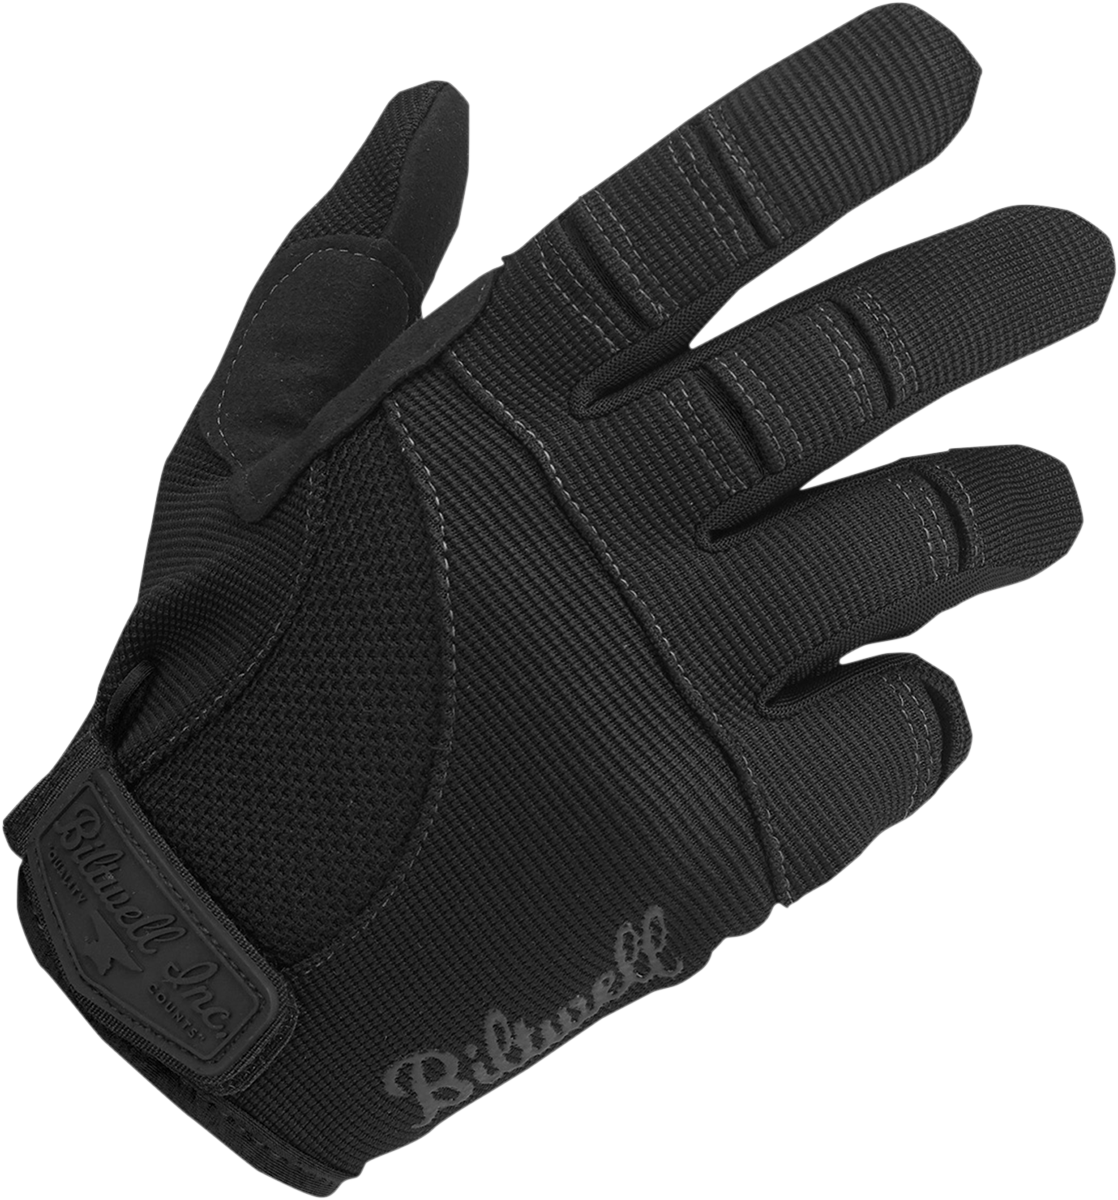 Biltwell Mens Black Textile Moto Motorcycle Street Riding Racing Gloves